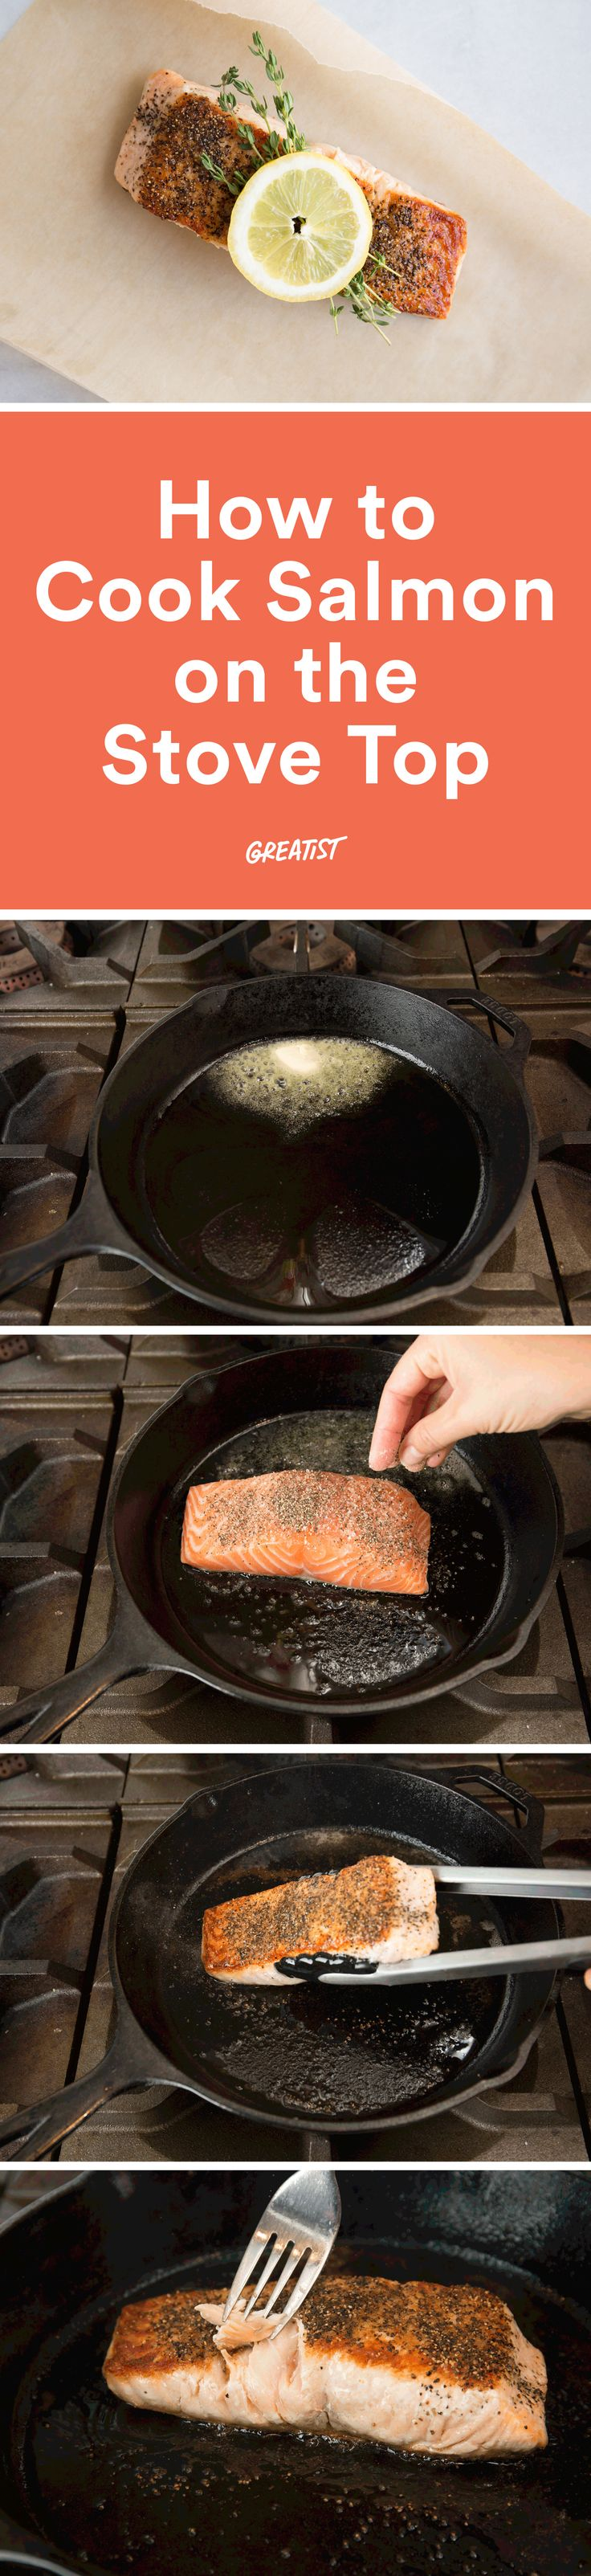 Your shortcuts to a healthy, delicious, and ridiculously easy weeknight meal. http://greatist.com/eat/how-to-cook-salmon